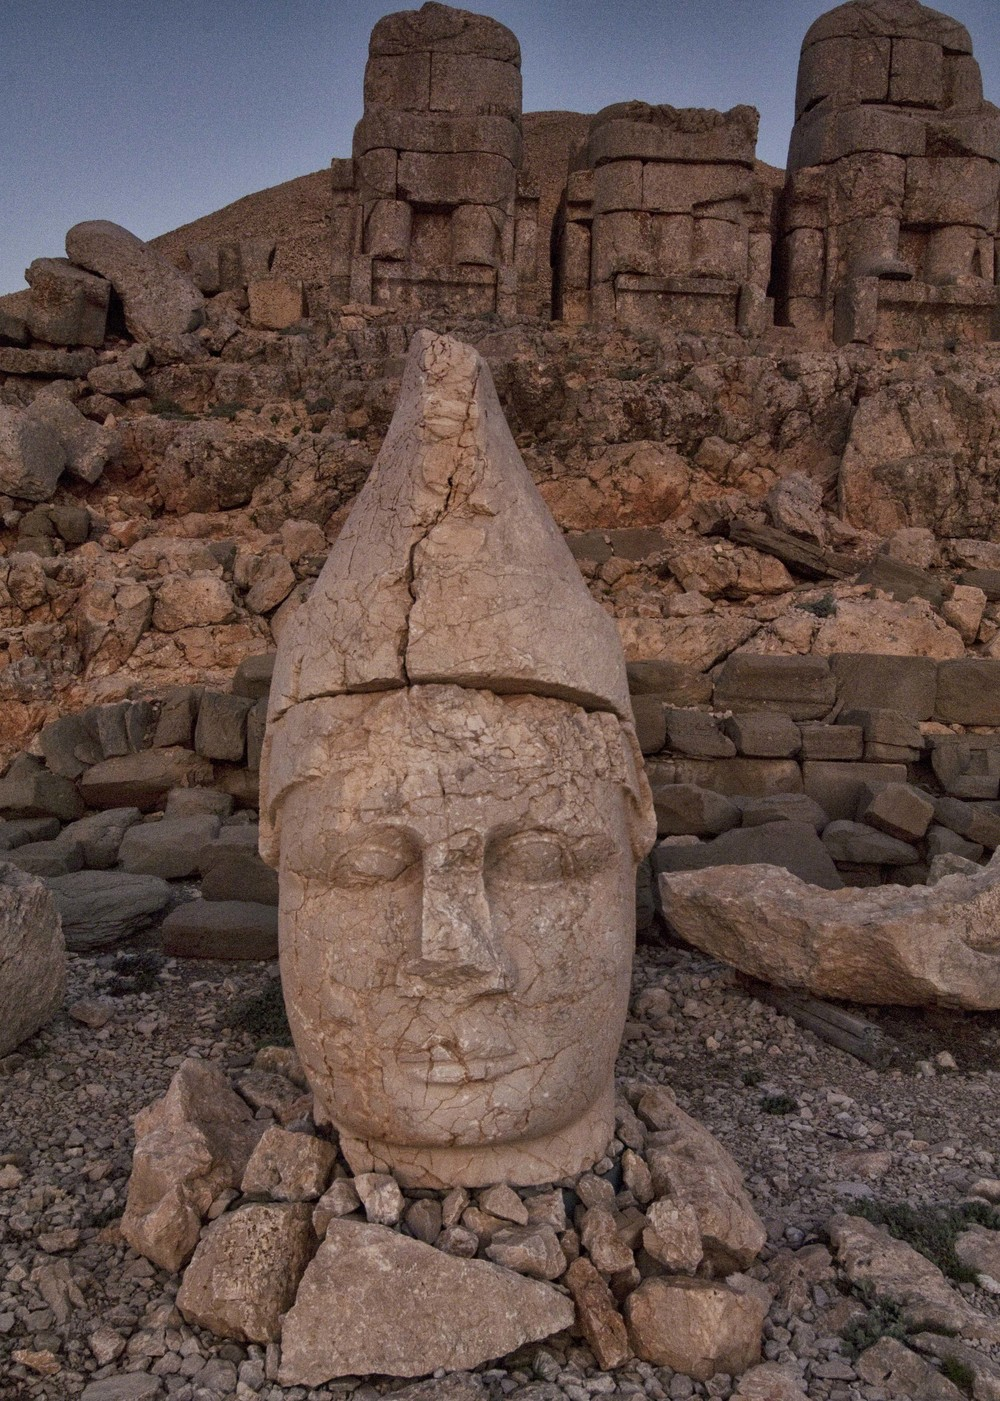 The head of the god Apollo, Mt. Nemrut, Turkey, with the thrones of the gods at the crest of the 7,000 foot mountain.